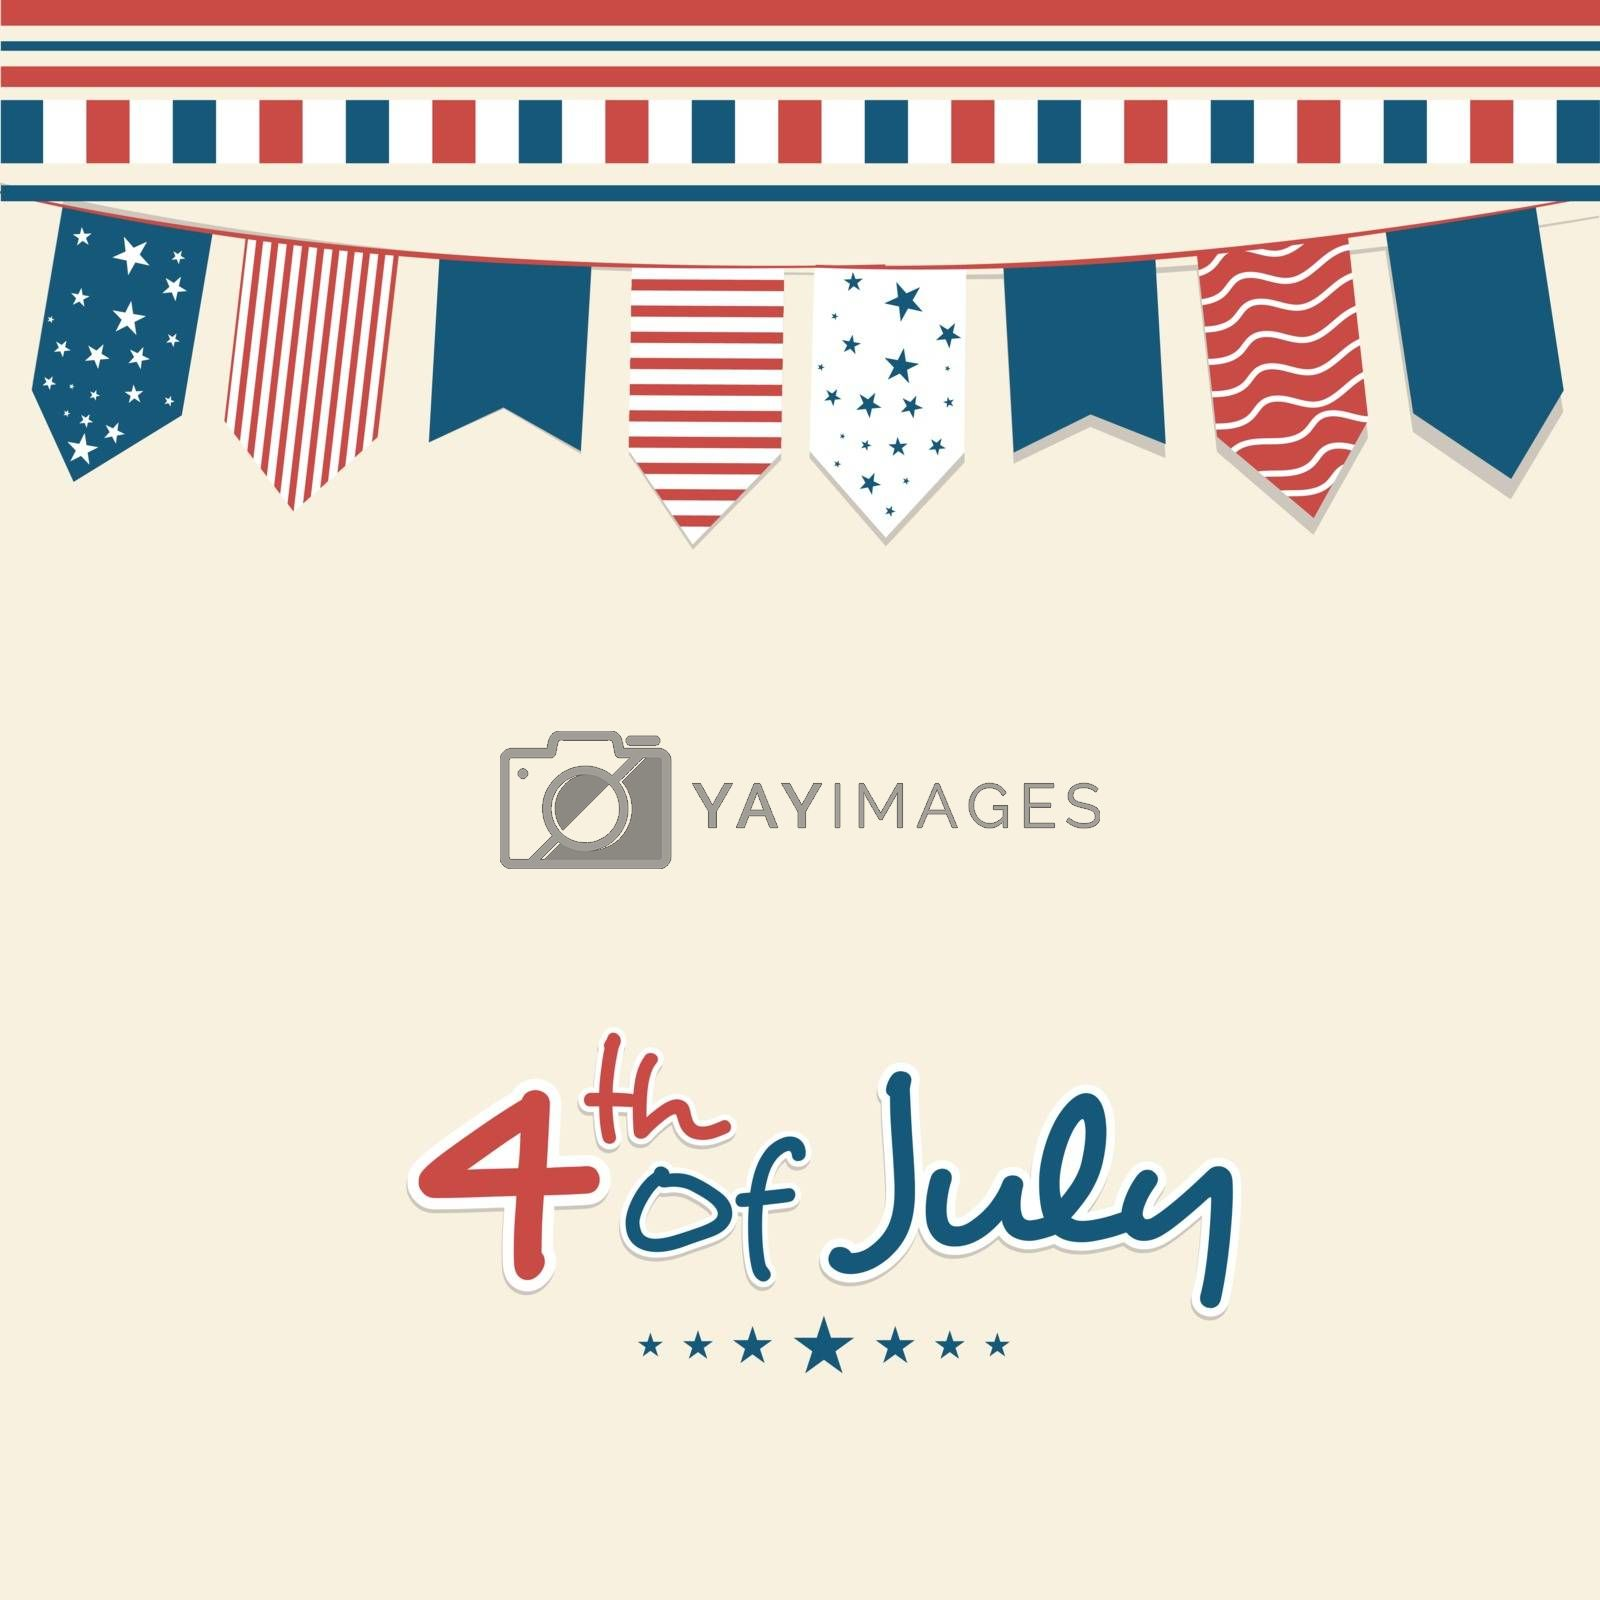 Creative colorful buntings decorated greeting card design for 4th of July, American Independence Day.